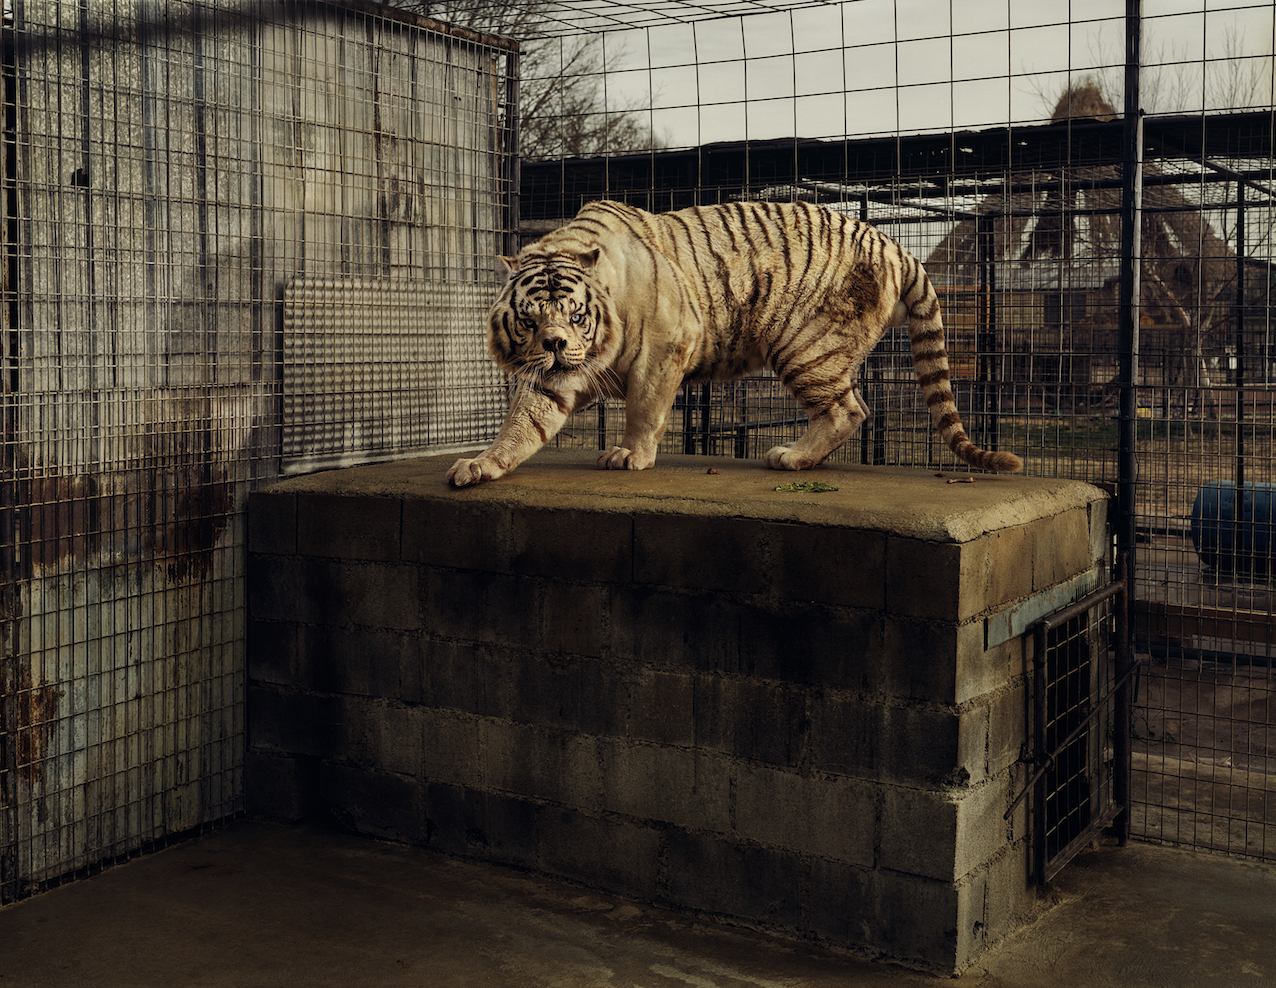 Taryn Simon, An American Index of the Hidden and Unfamiliar, 2007. Courtesy: Taryn Simon. White Tiger (Kenny), Selective Inbreeding Turpentine Creek Wildlife Refuge and Foundation Eureka Springs, Arkansas.